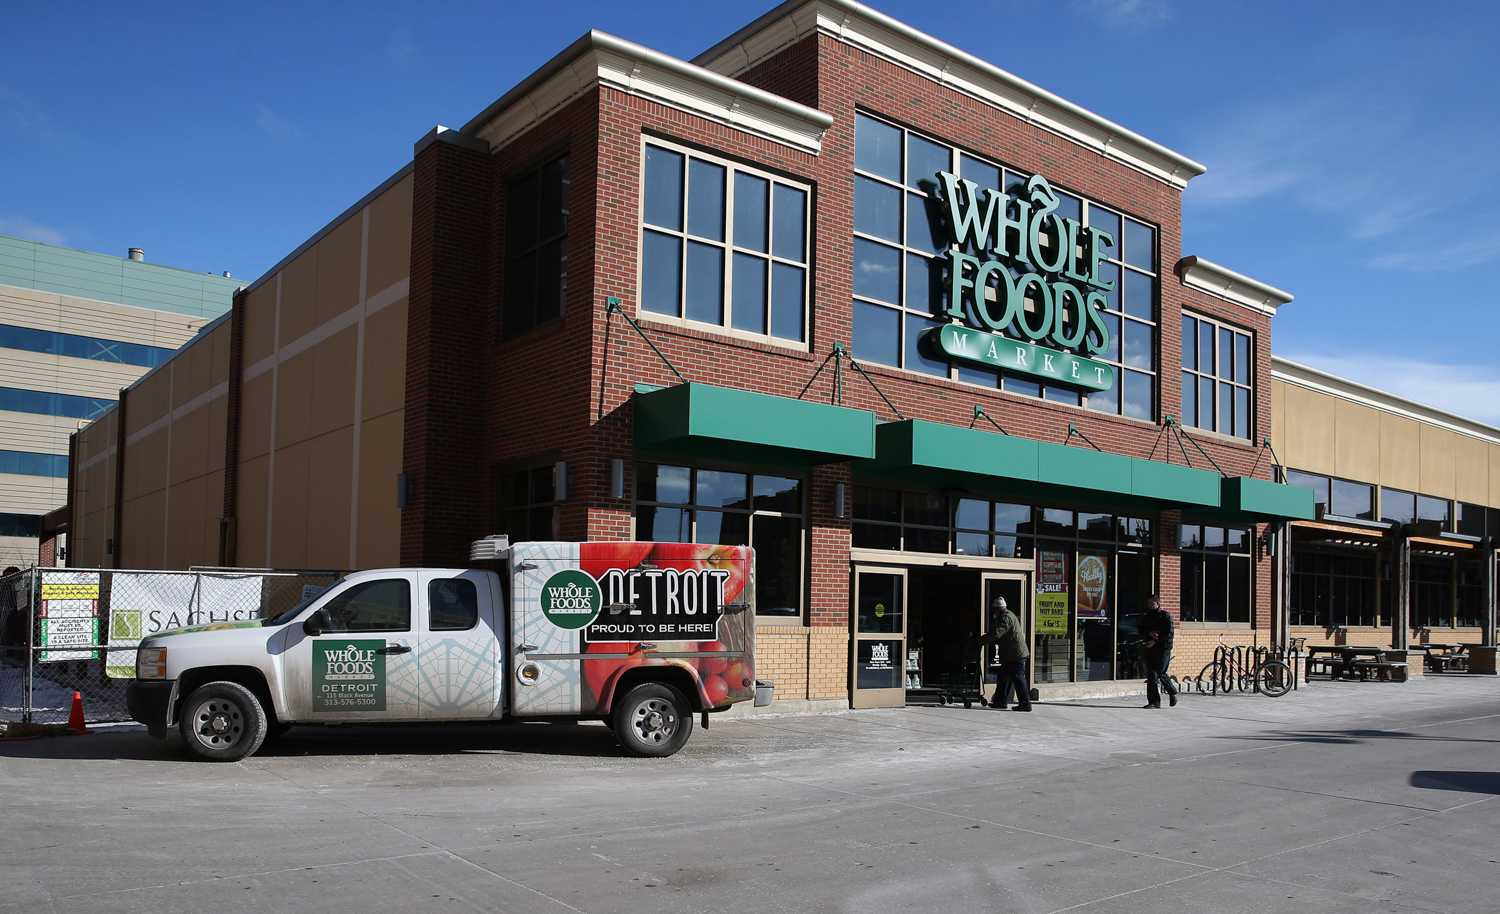 Whole Food's partnership with Amazon could be a positive, if the food retailers' values win out. (Terrence Antonio James/Chicago Tribune/TNS)